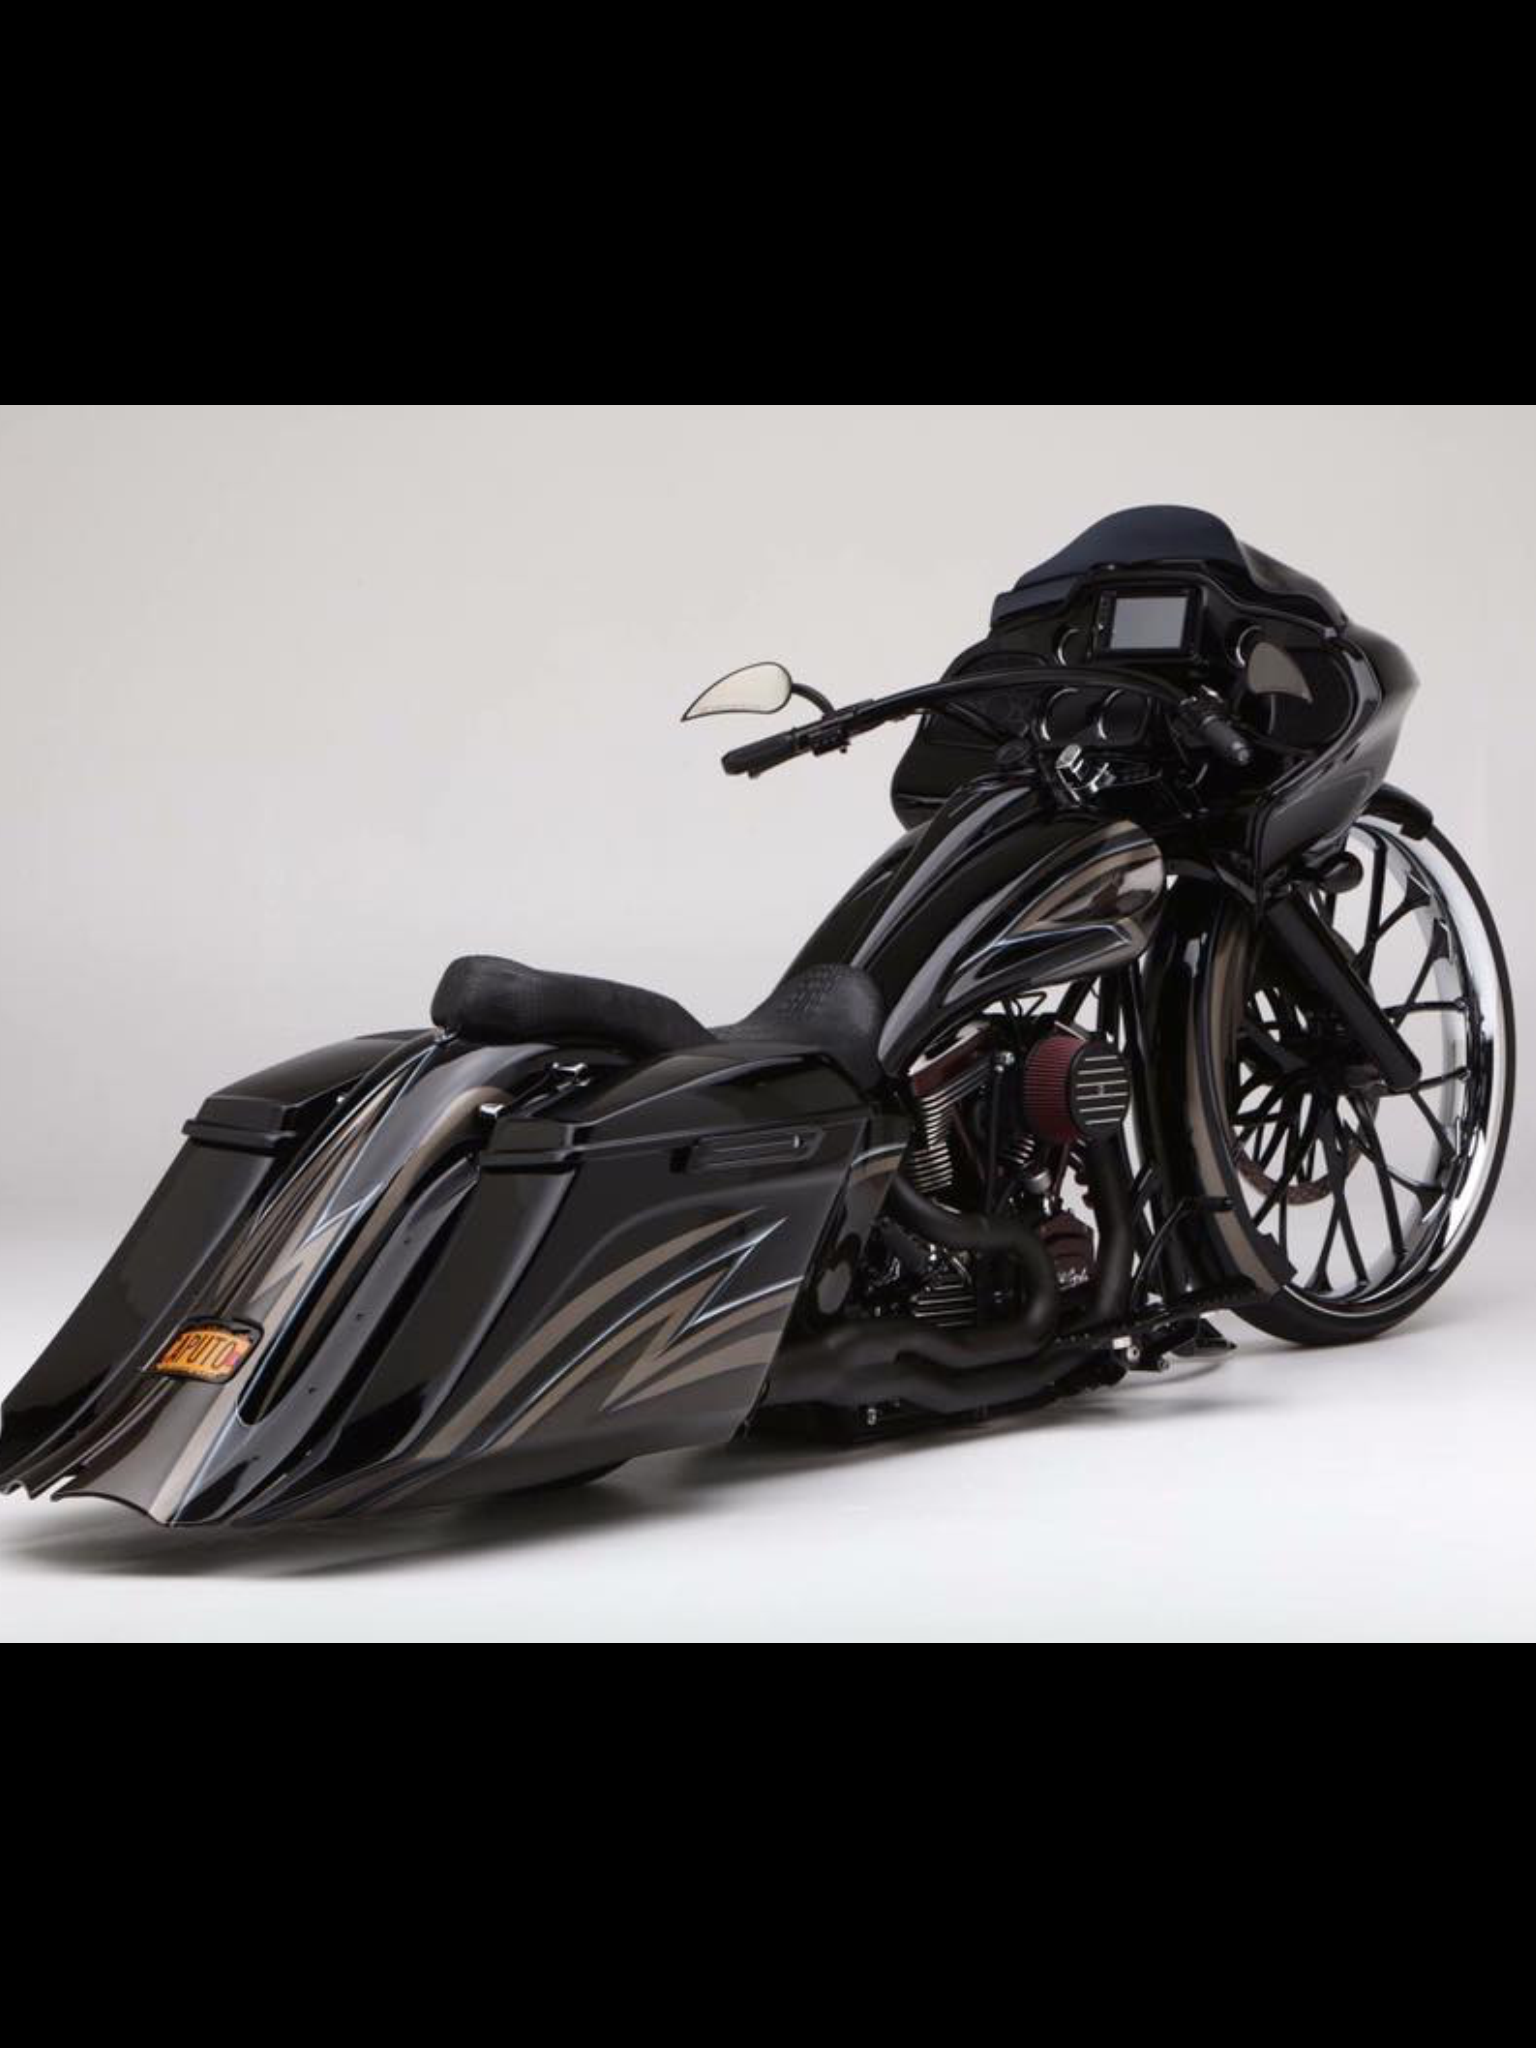 Pin By Rather Unique On Toys Toys Toys Harley Bikes Bagger Bagger Motorcycle